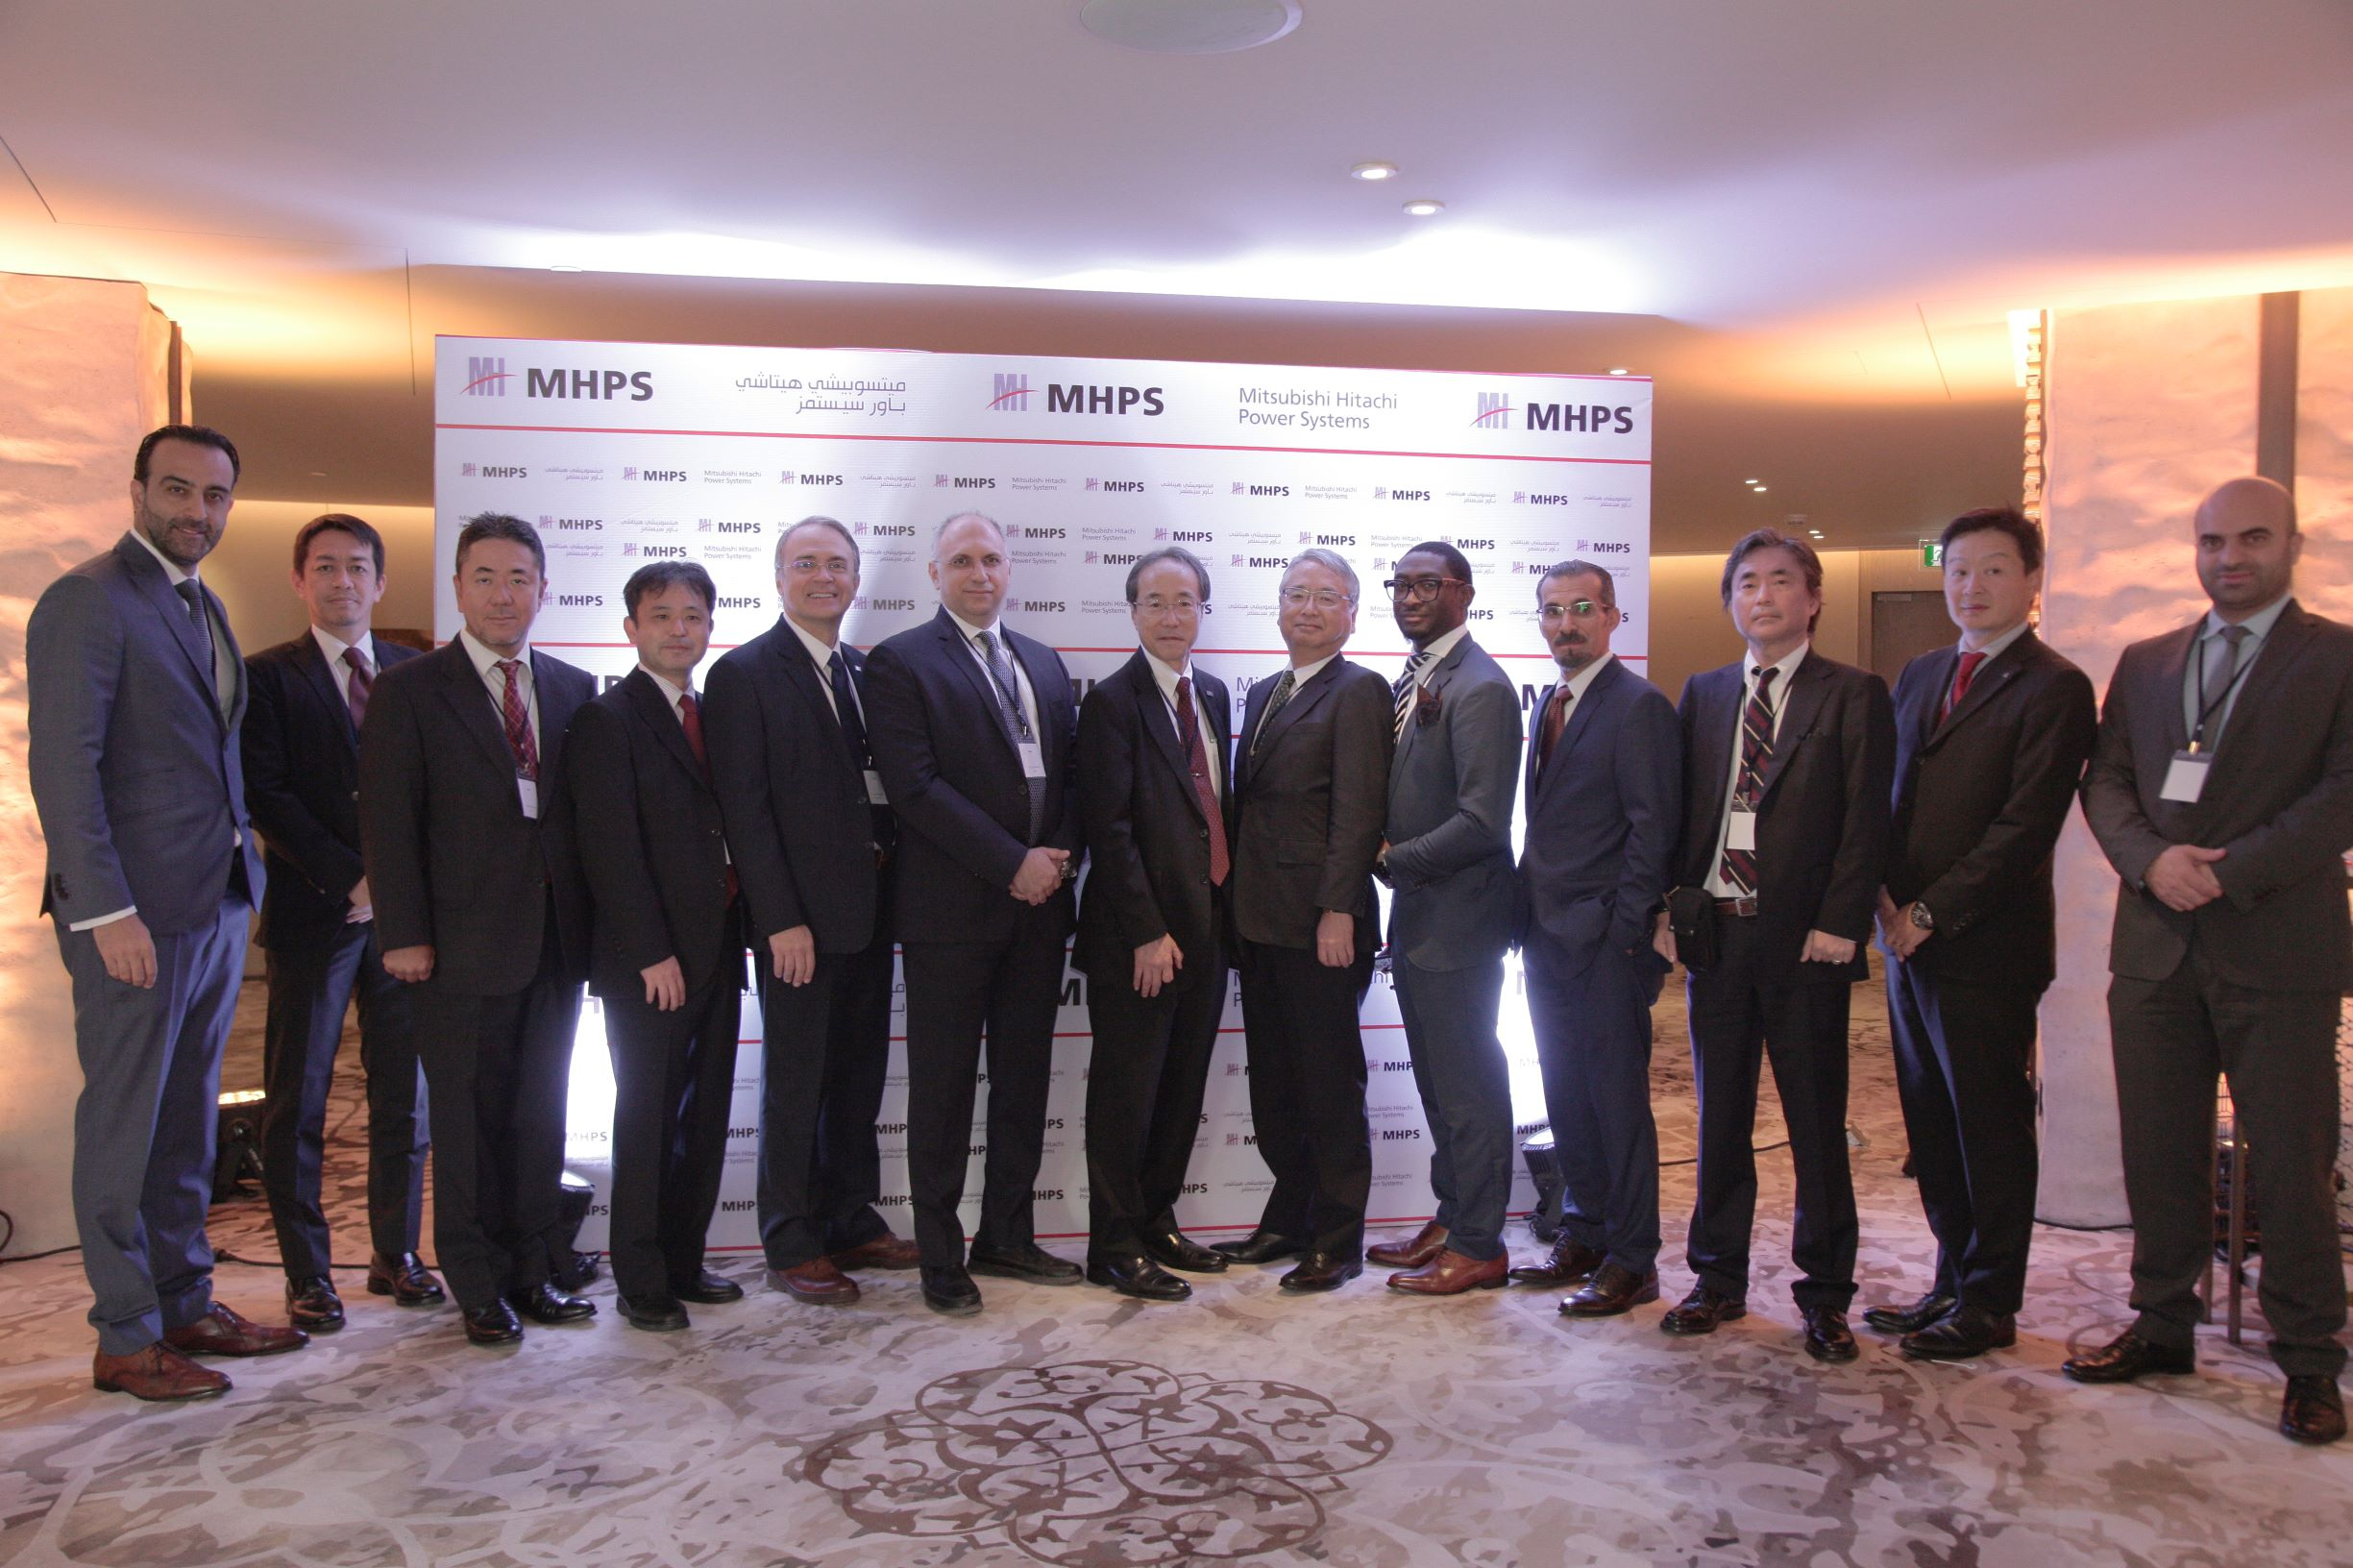 Mitsubishi Hitachi Power Systems (MHPS) seeks to strengthen energy sector in Lebanon with its cutting-edge technology